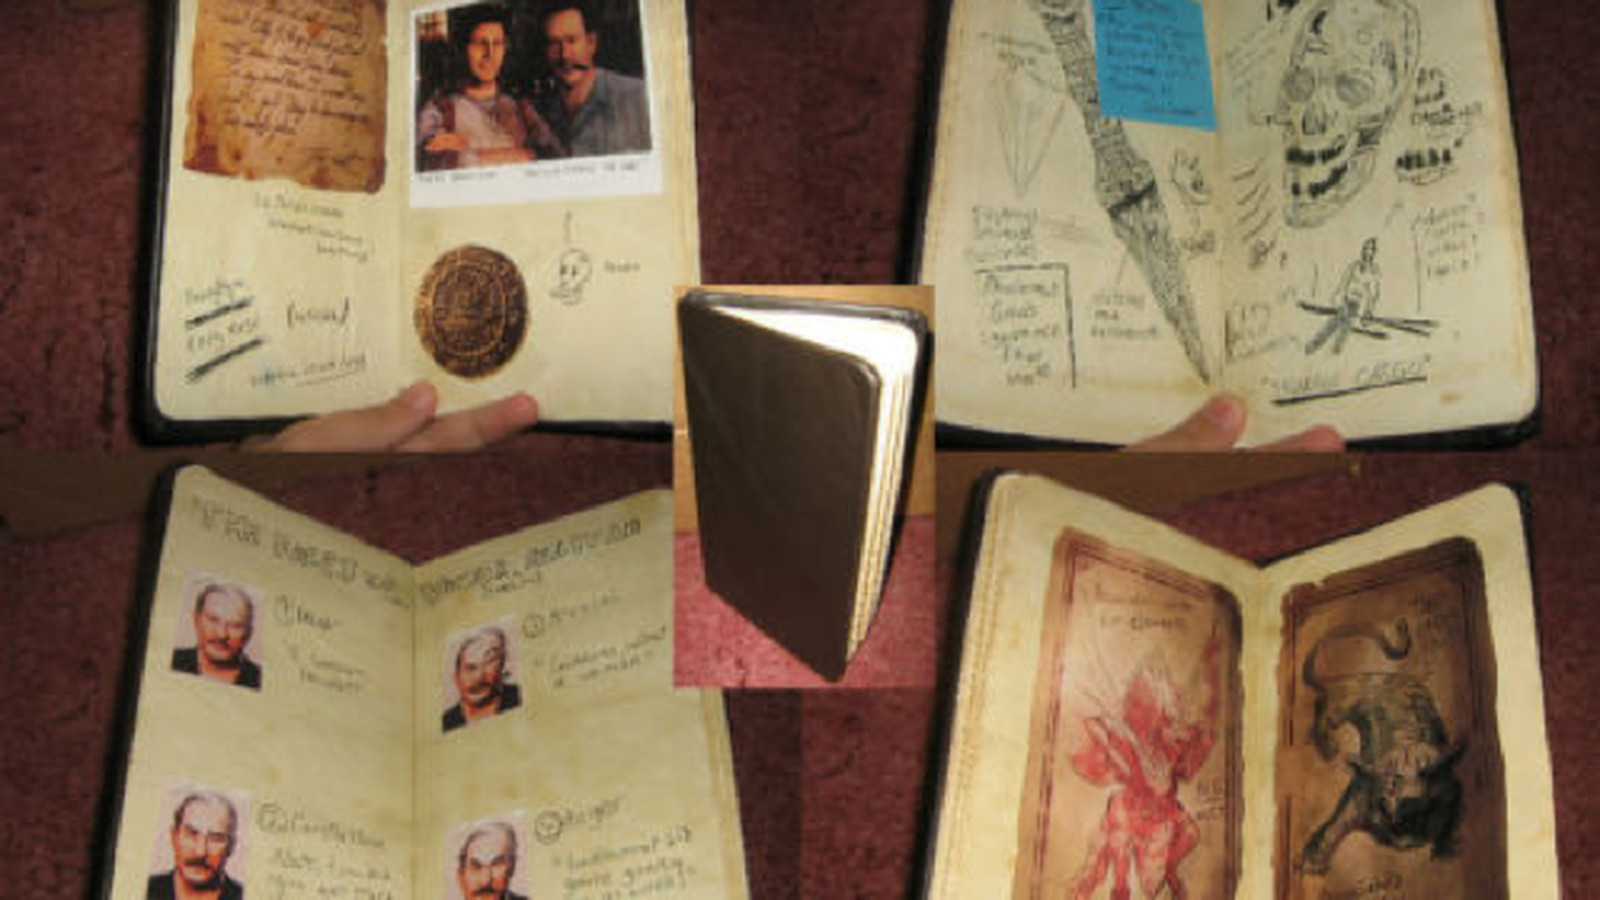 Nathan Drake S Uncharted 2 Notebook Brought To Life The Verge